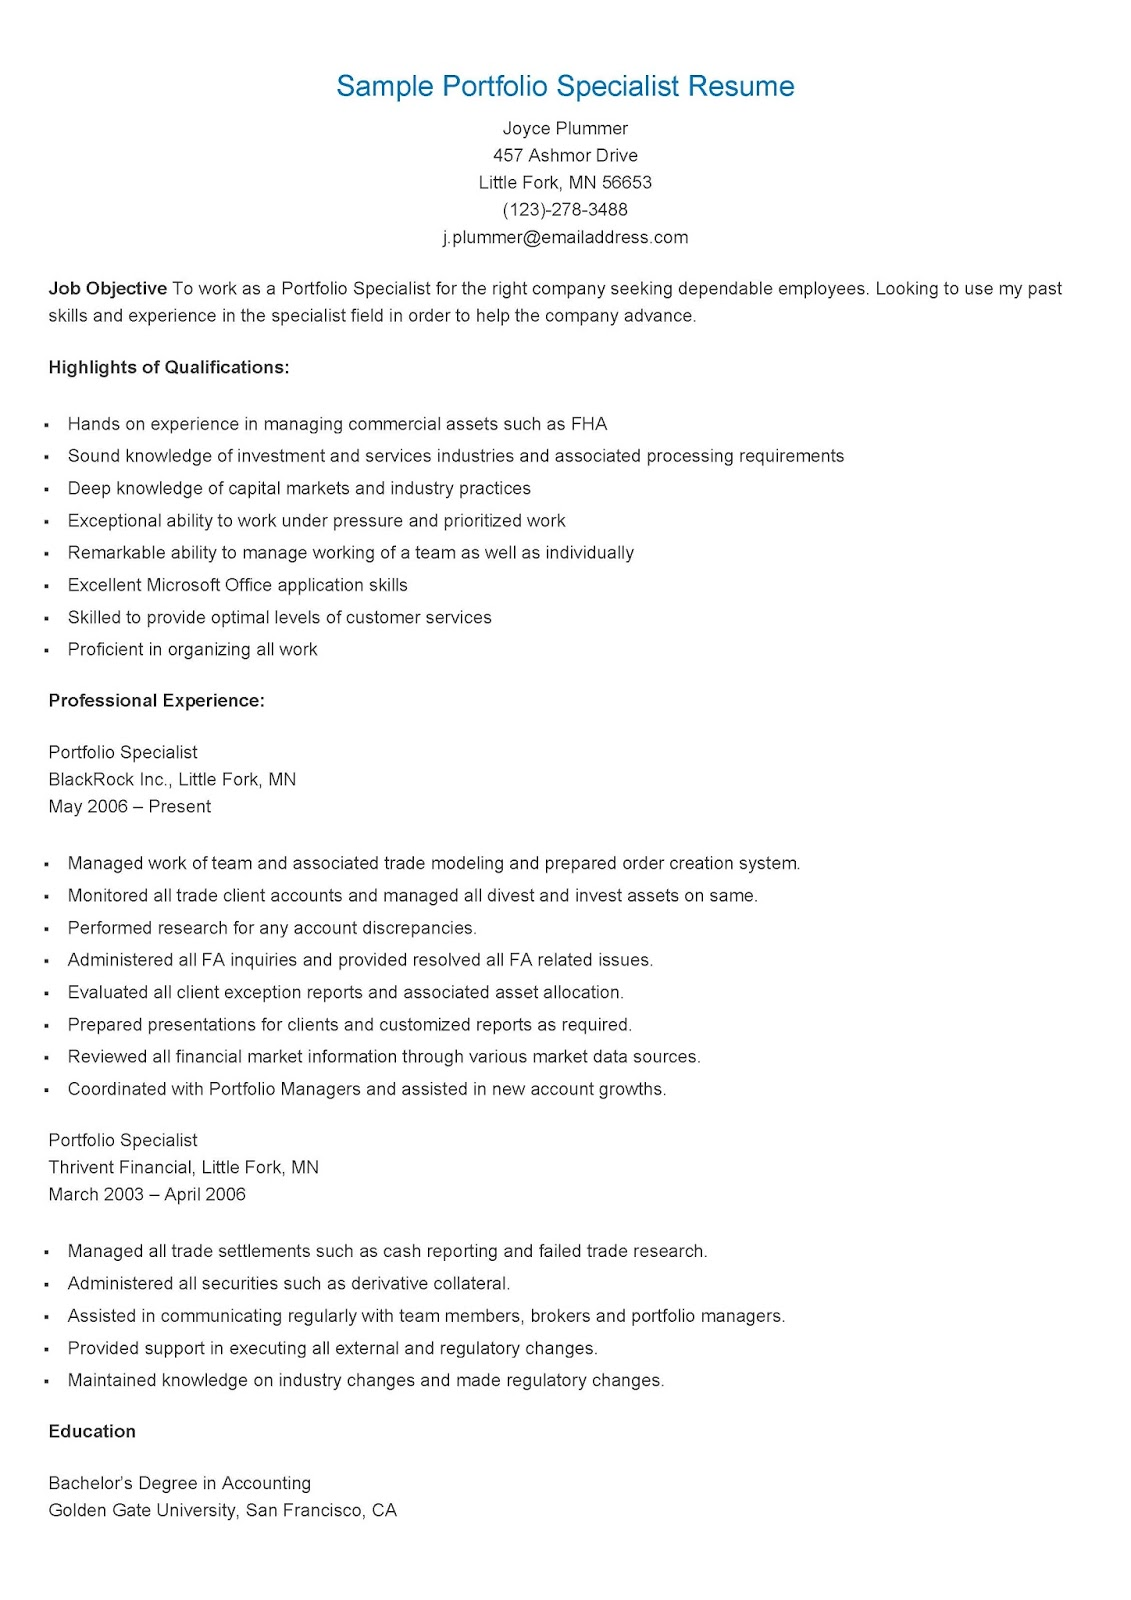 resume samples  sample portfolio specialist resume